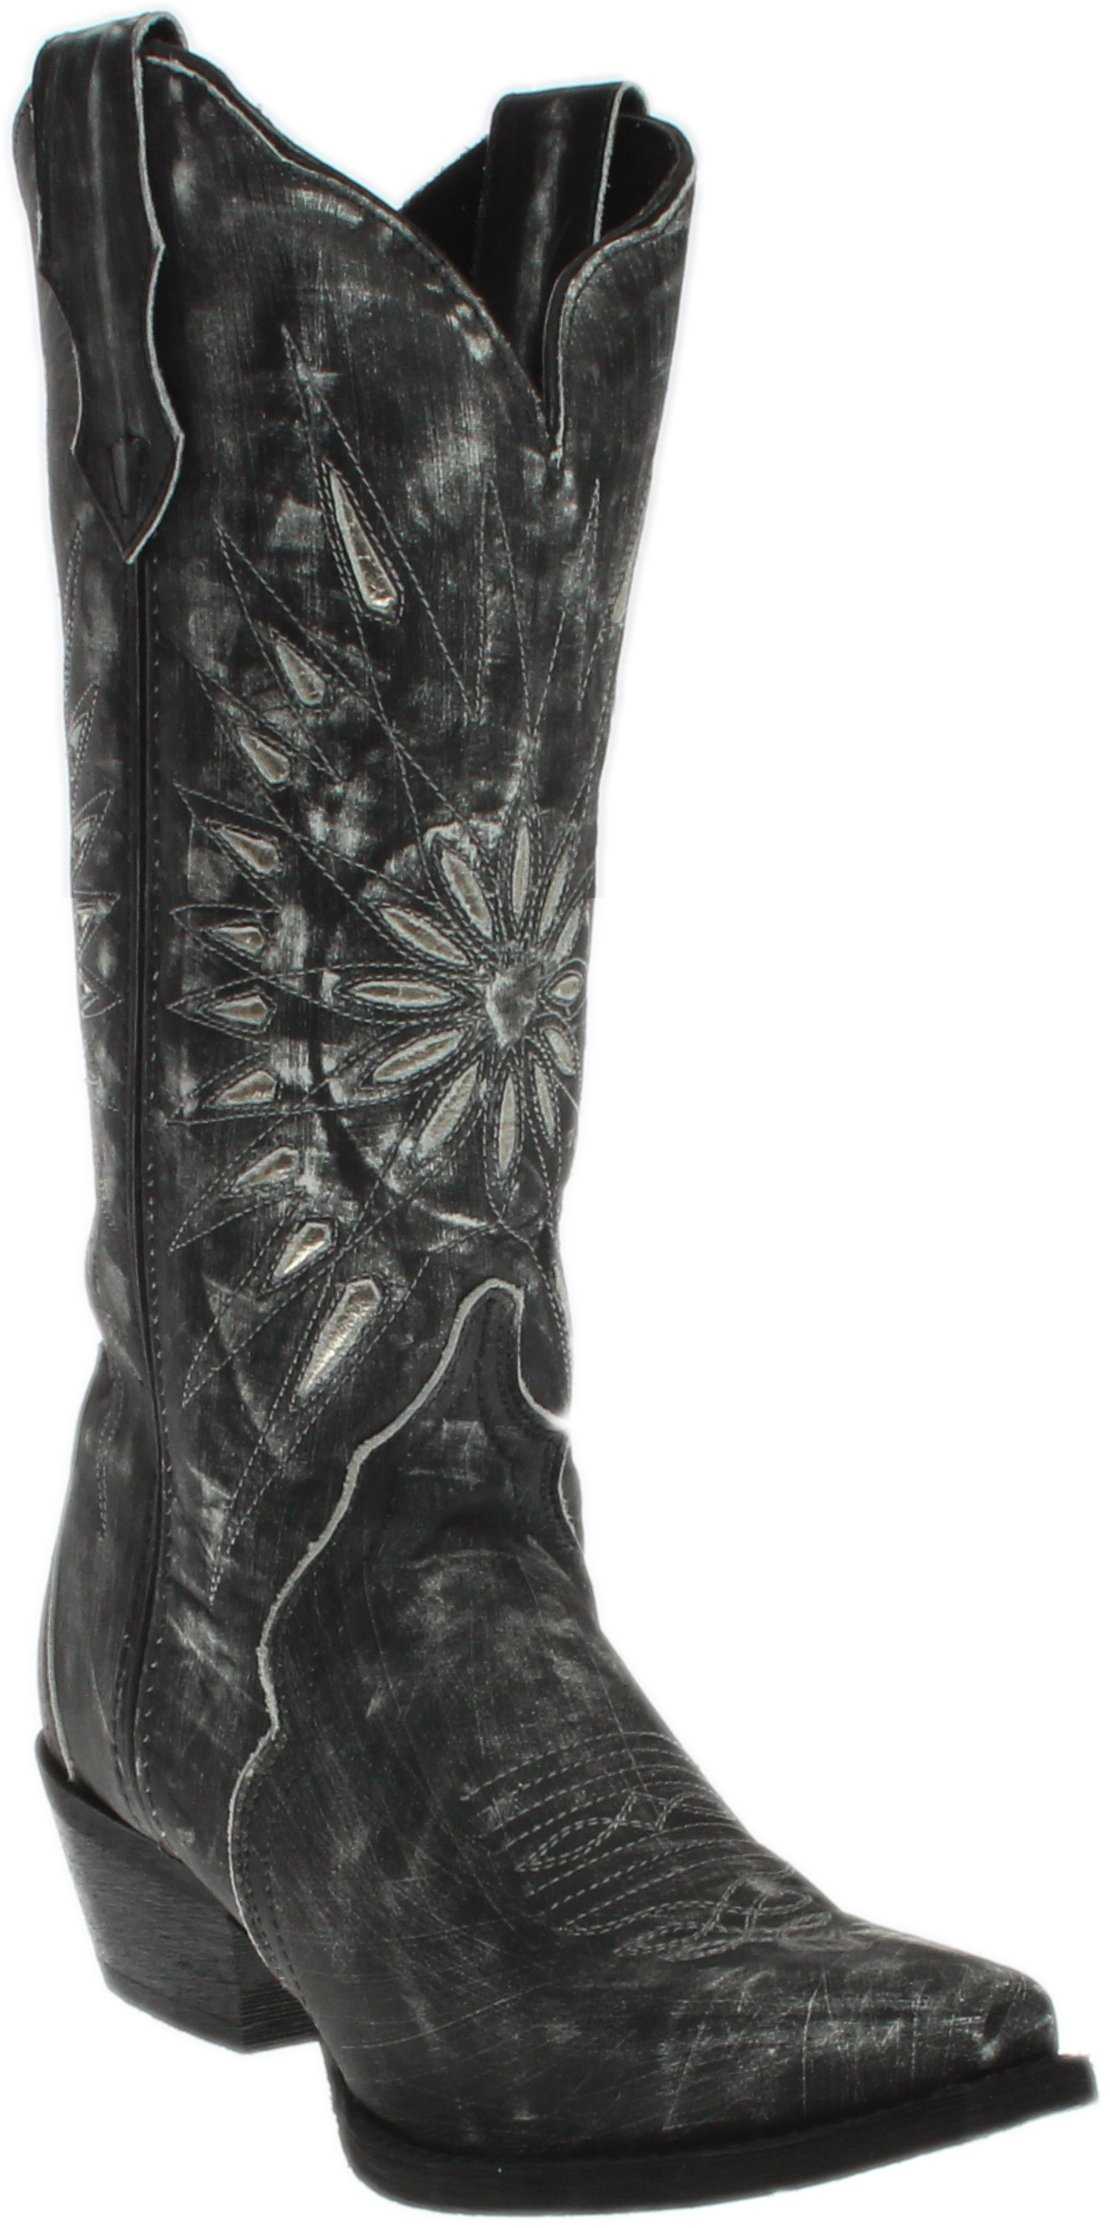 Laredo Womens Black Starburst Leather Cowboy Boots 12in Cutout 7.5 M